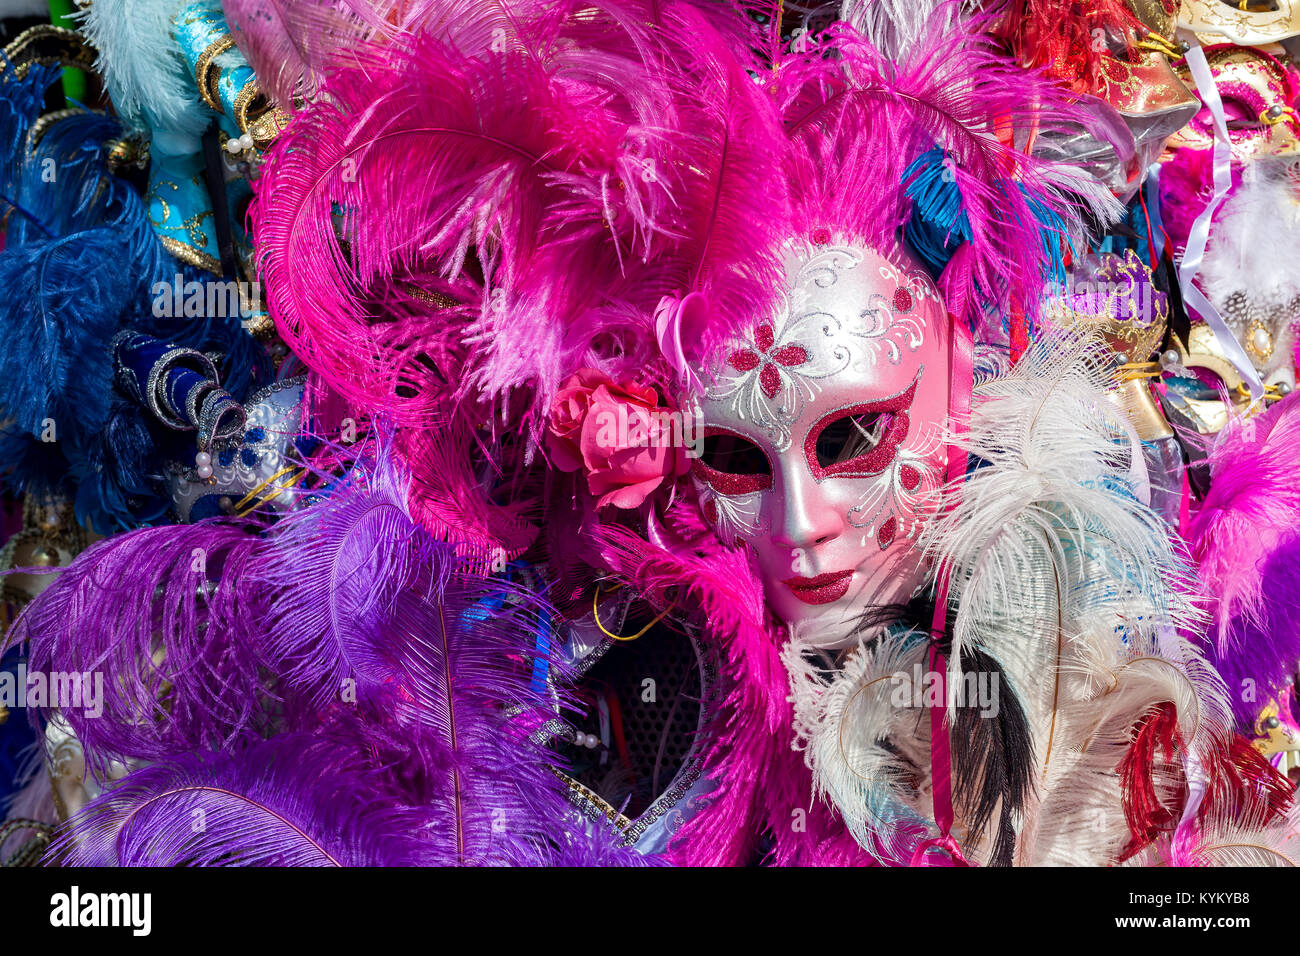 Ornate carnival mask among colorful feathers in Venice, Italy. - Stock Image